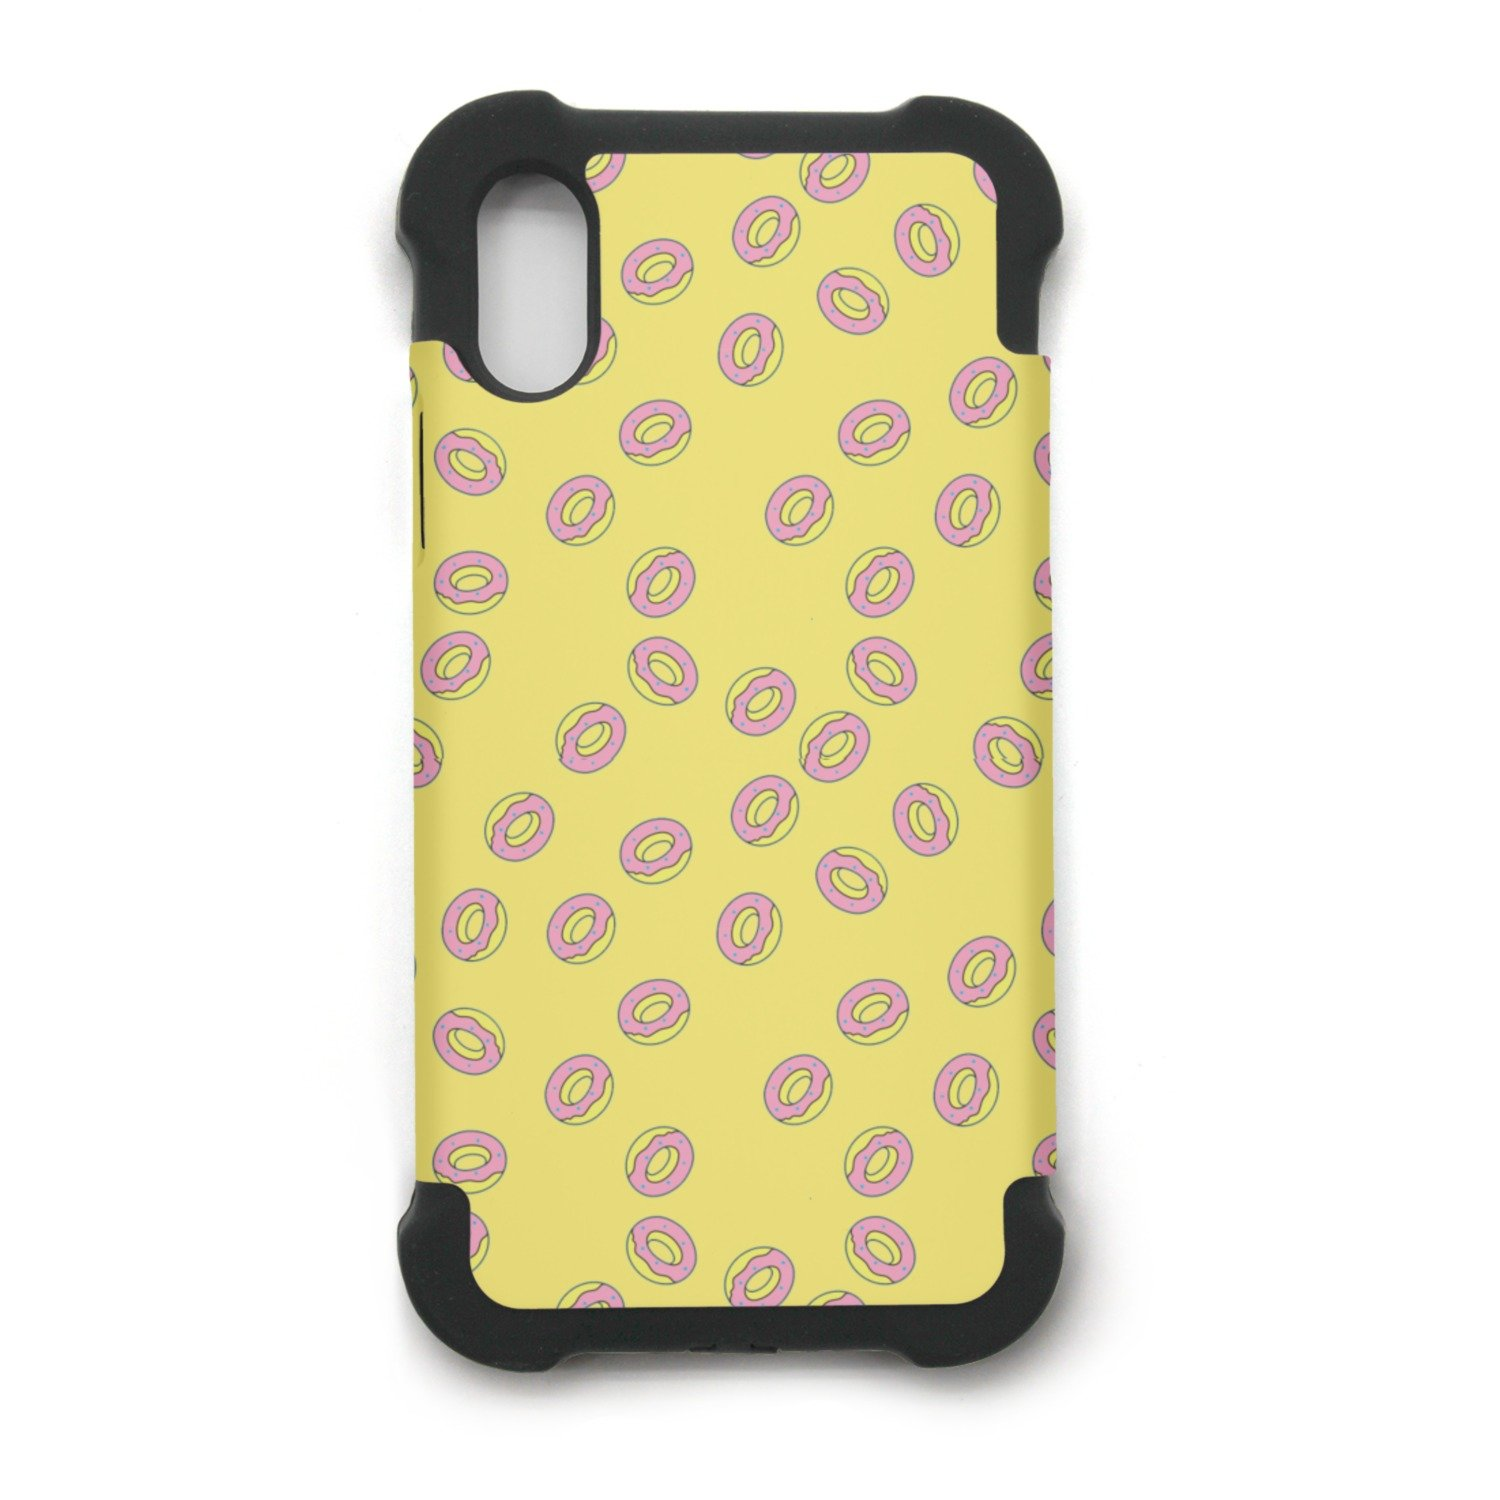 Donut Cookies Printing IPhone X Case Plate And Soft TPU/Shock Proof/Anti-Finger Double Protection Phone Back Case Cover For IPhone X